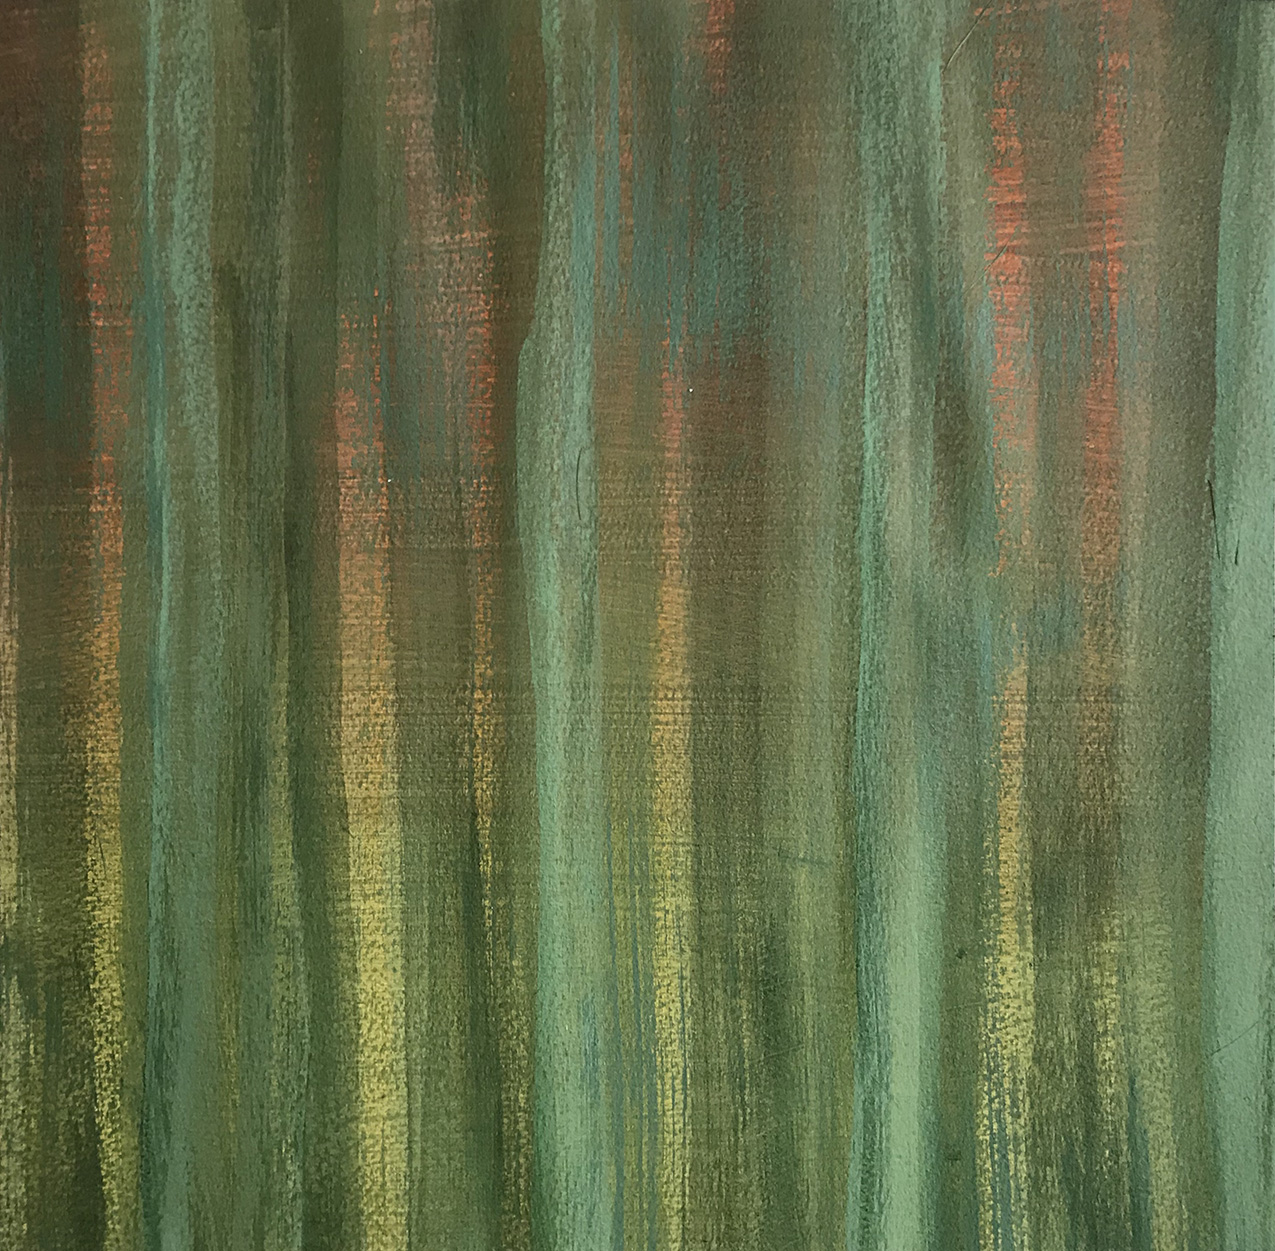 abstract painting of vertical brush strokes in various shades of green